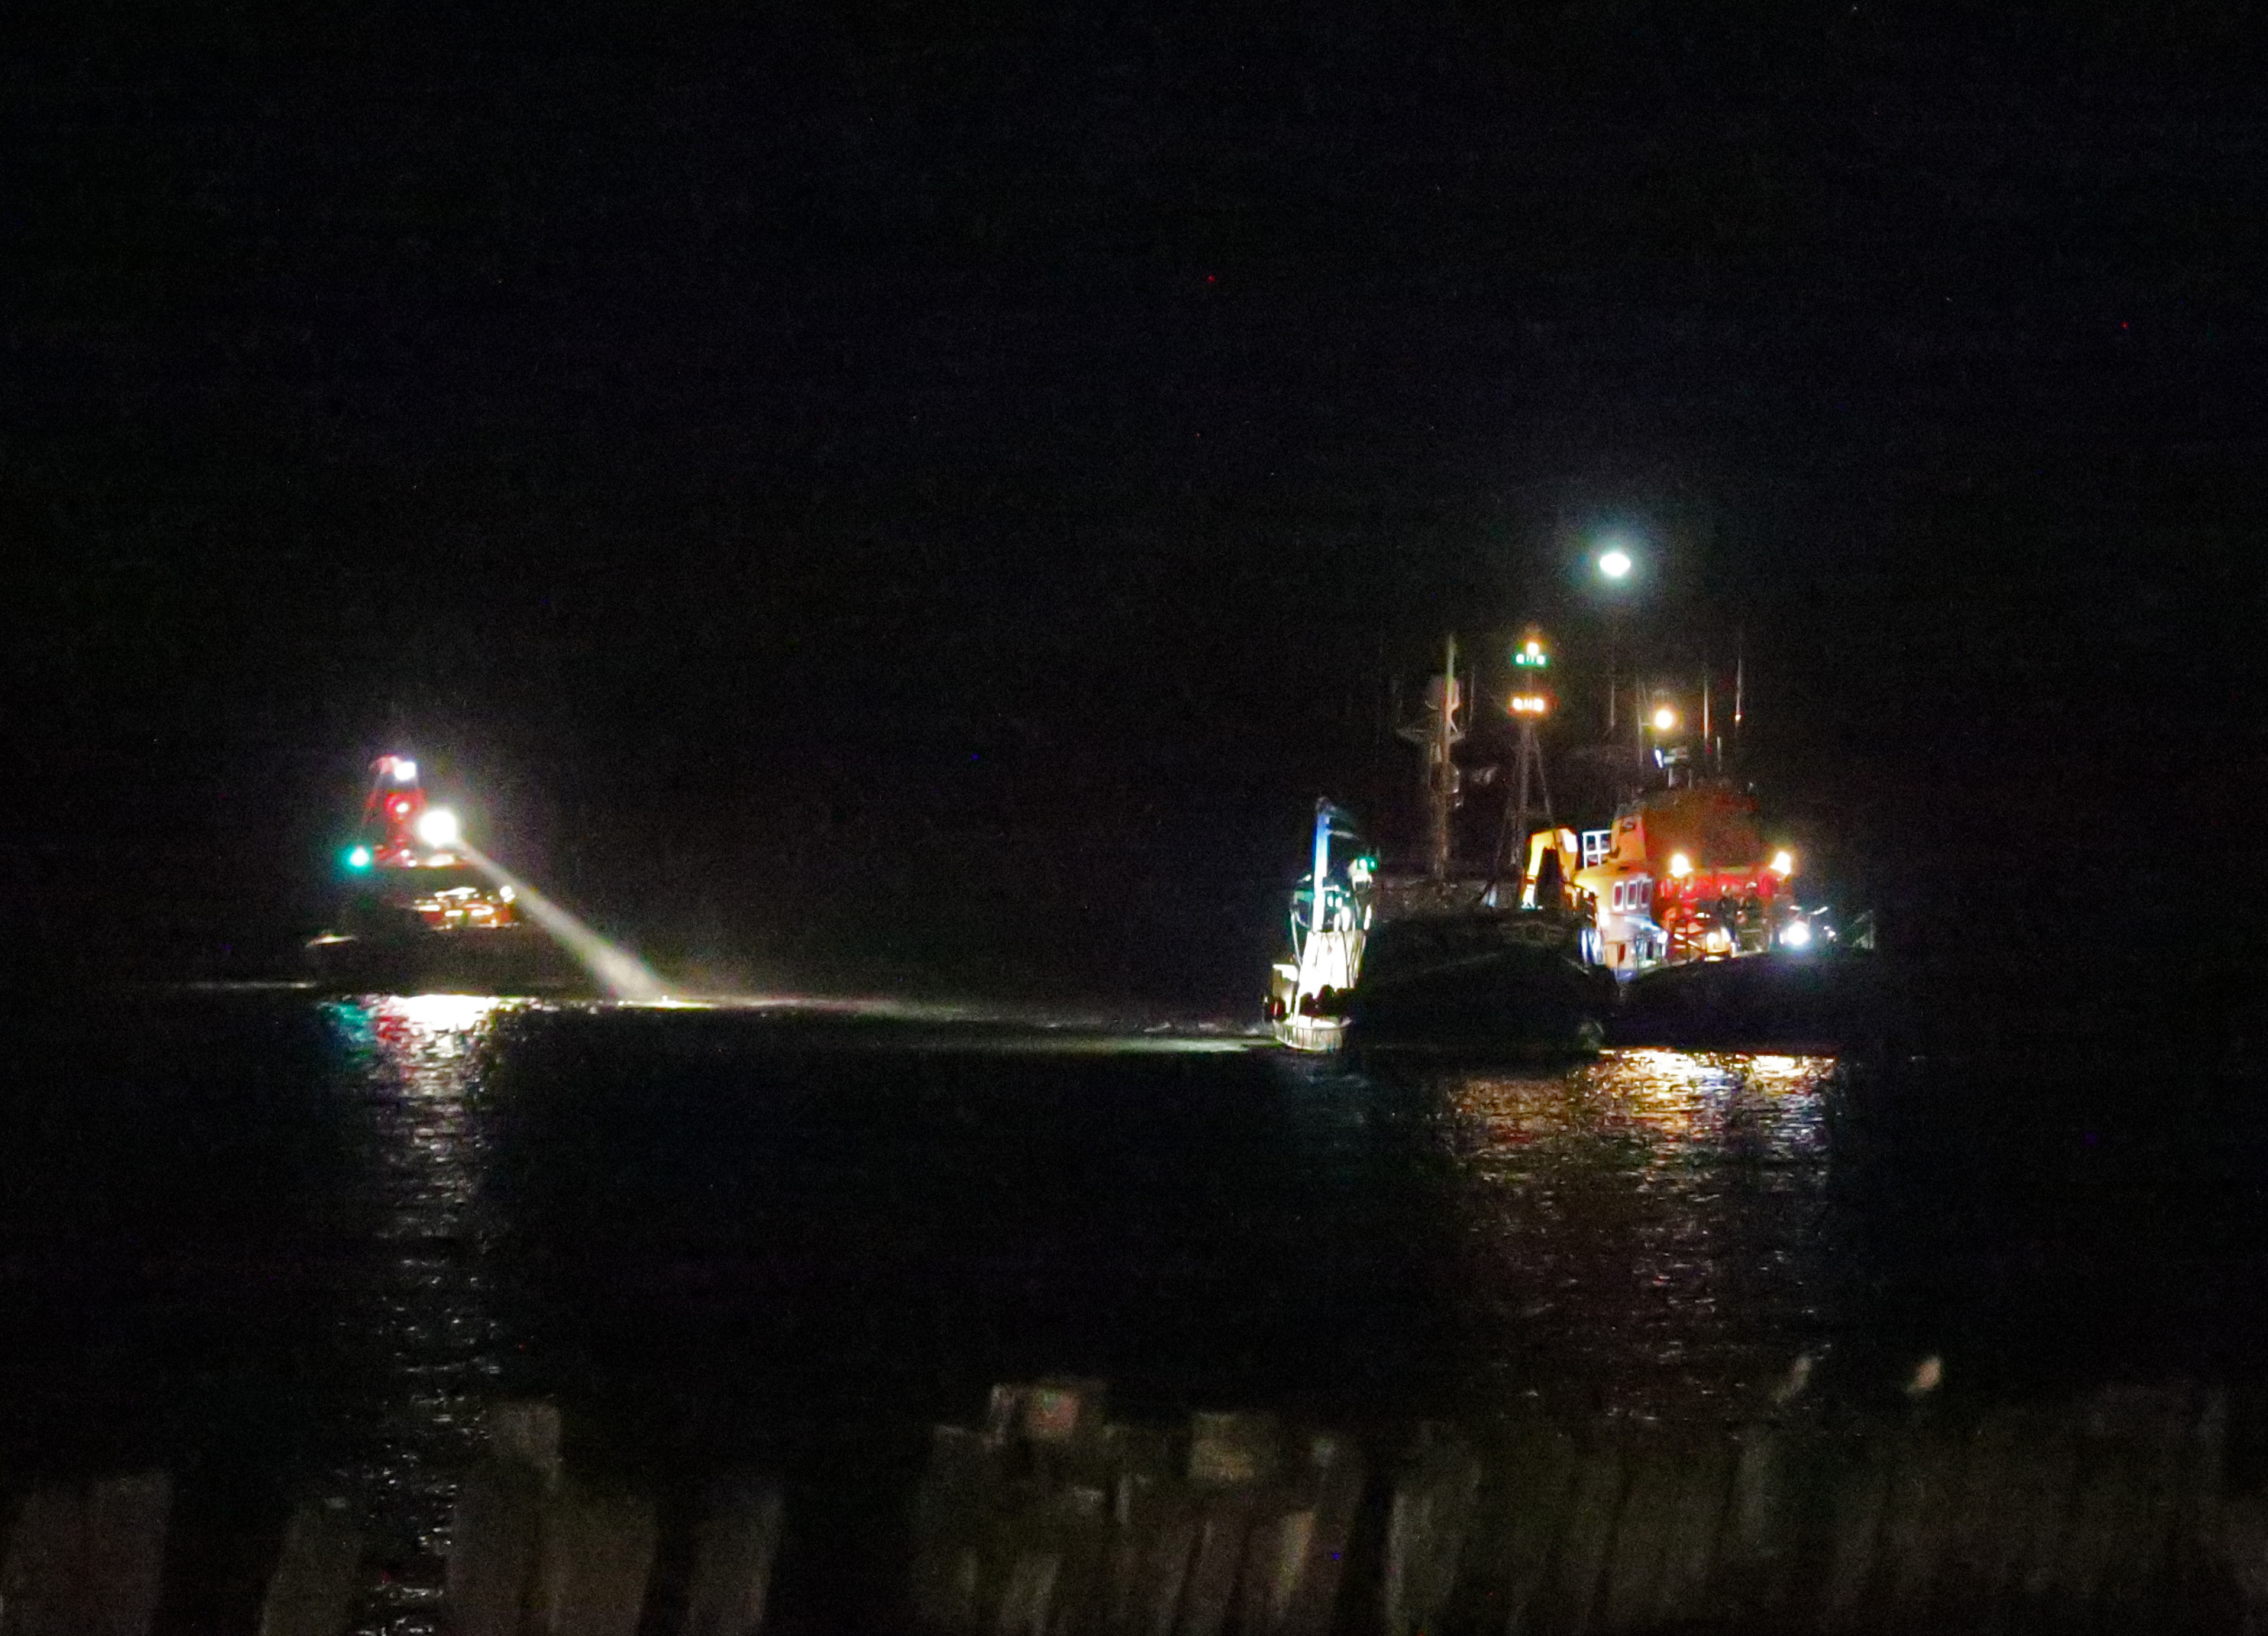 16 Feb 2019 The fishing vessel Shaulora is towed to safety by Tynemouth RNLI Severn class all weather lifeboat Spirit of Northumberland, with Port of Tyne Pilot launch Collingwood seen standing by.